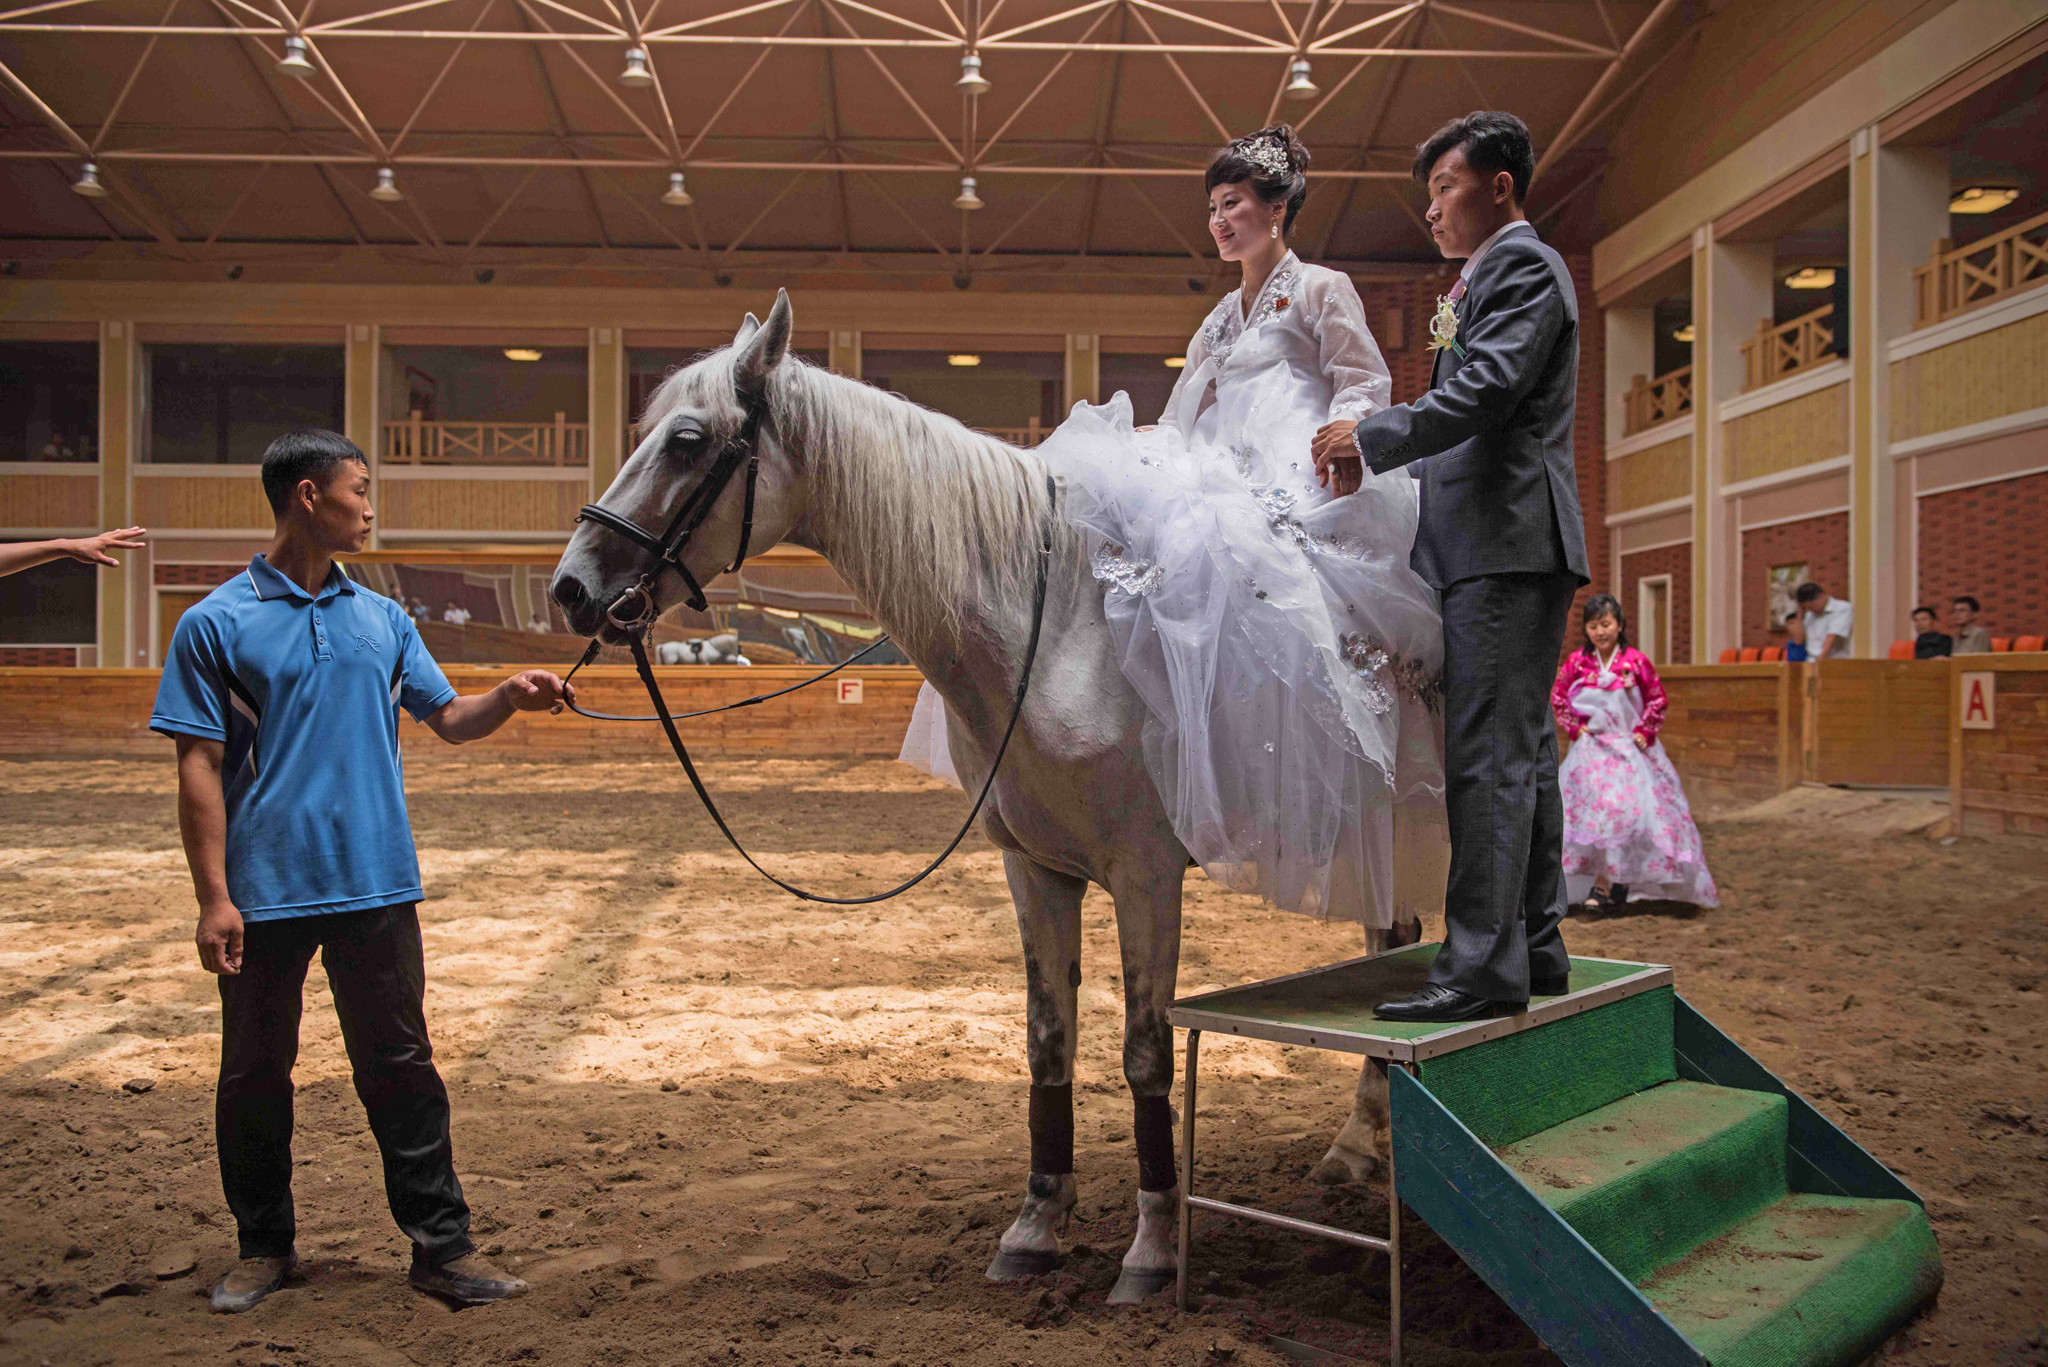 A bride and groom pose for photos with a horse at the Mirim riding school on the outskirts of Pyongyang on July 12, 2016